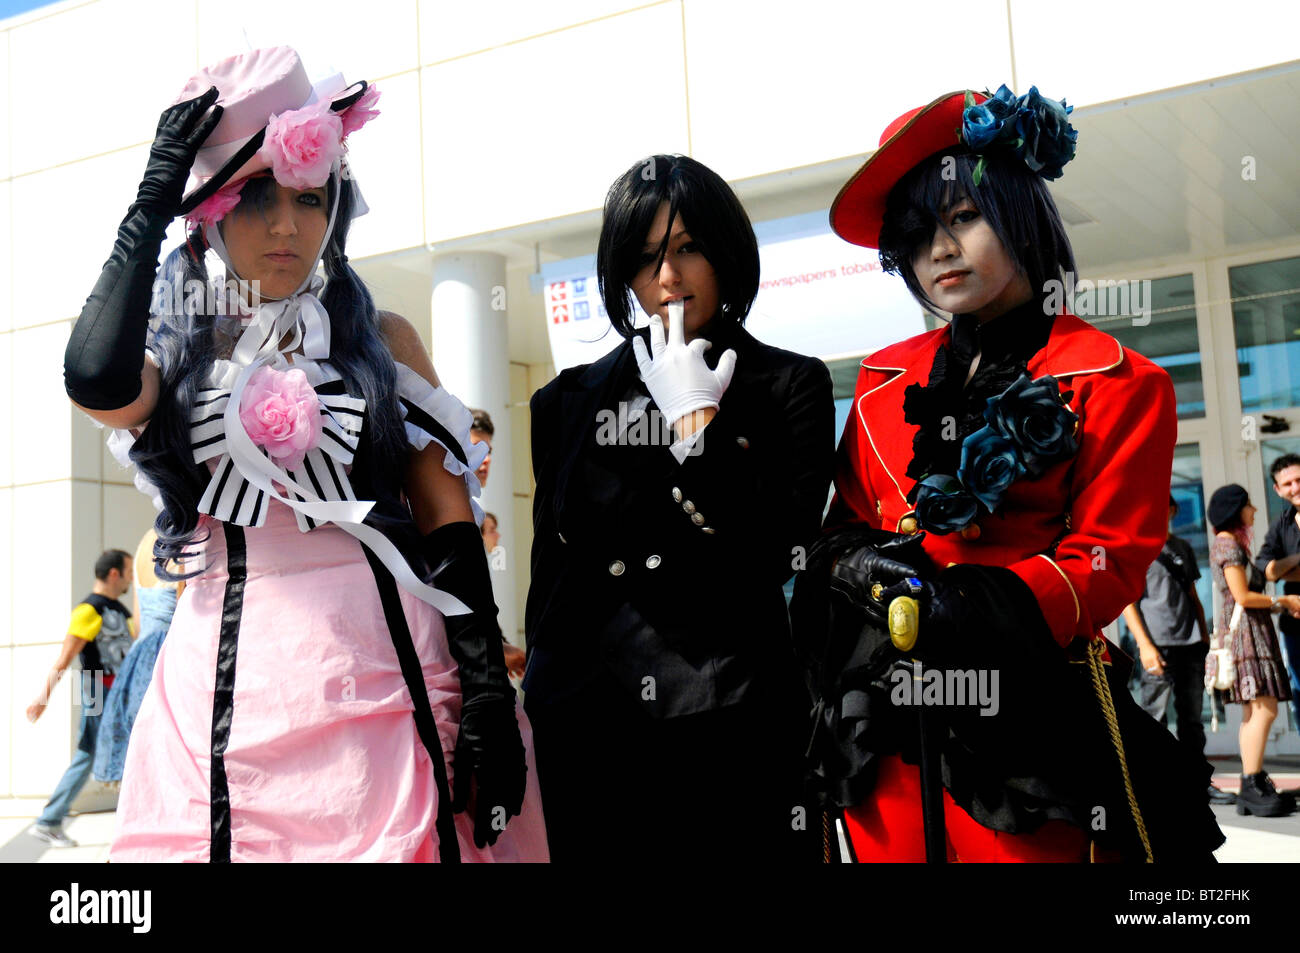 Group of cosplayers - Stock Image